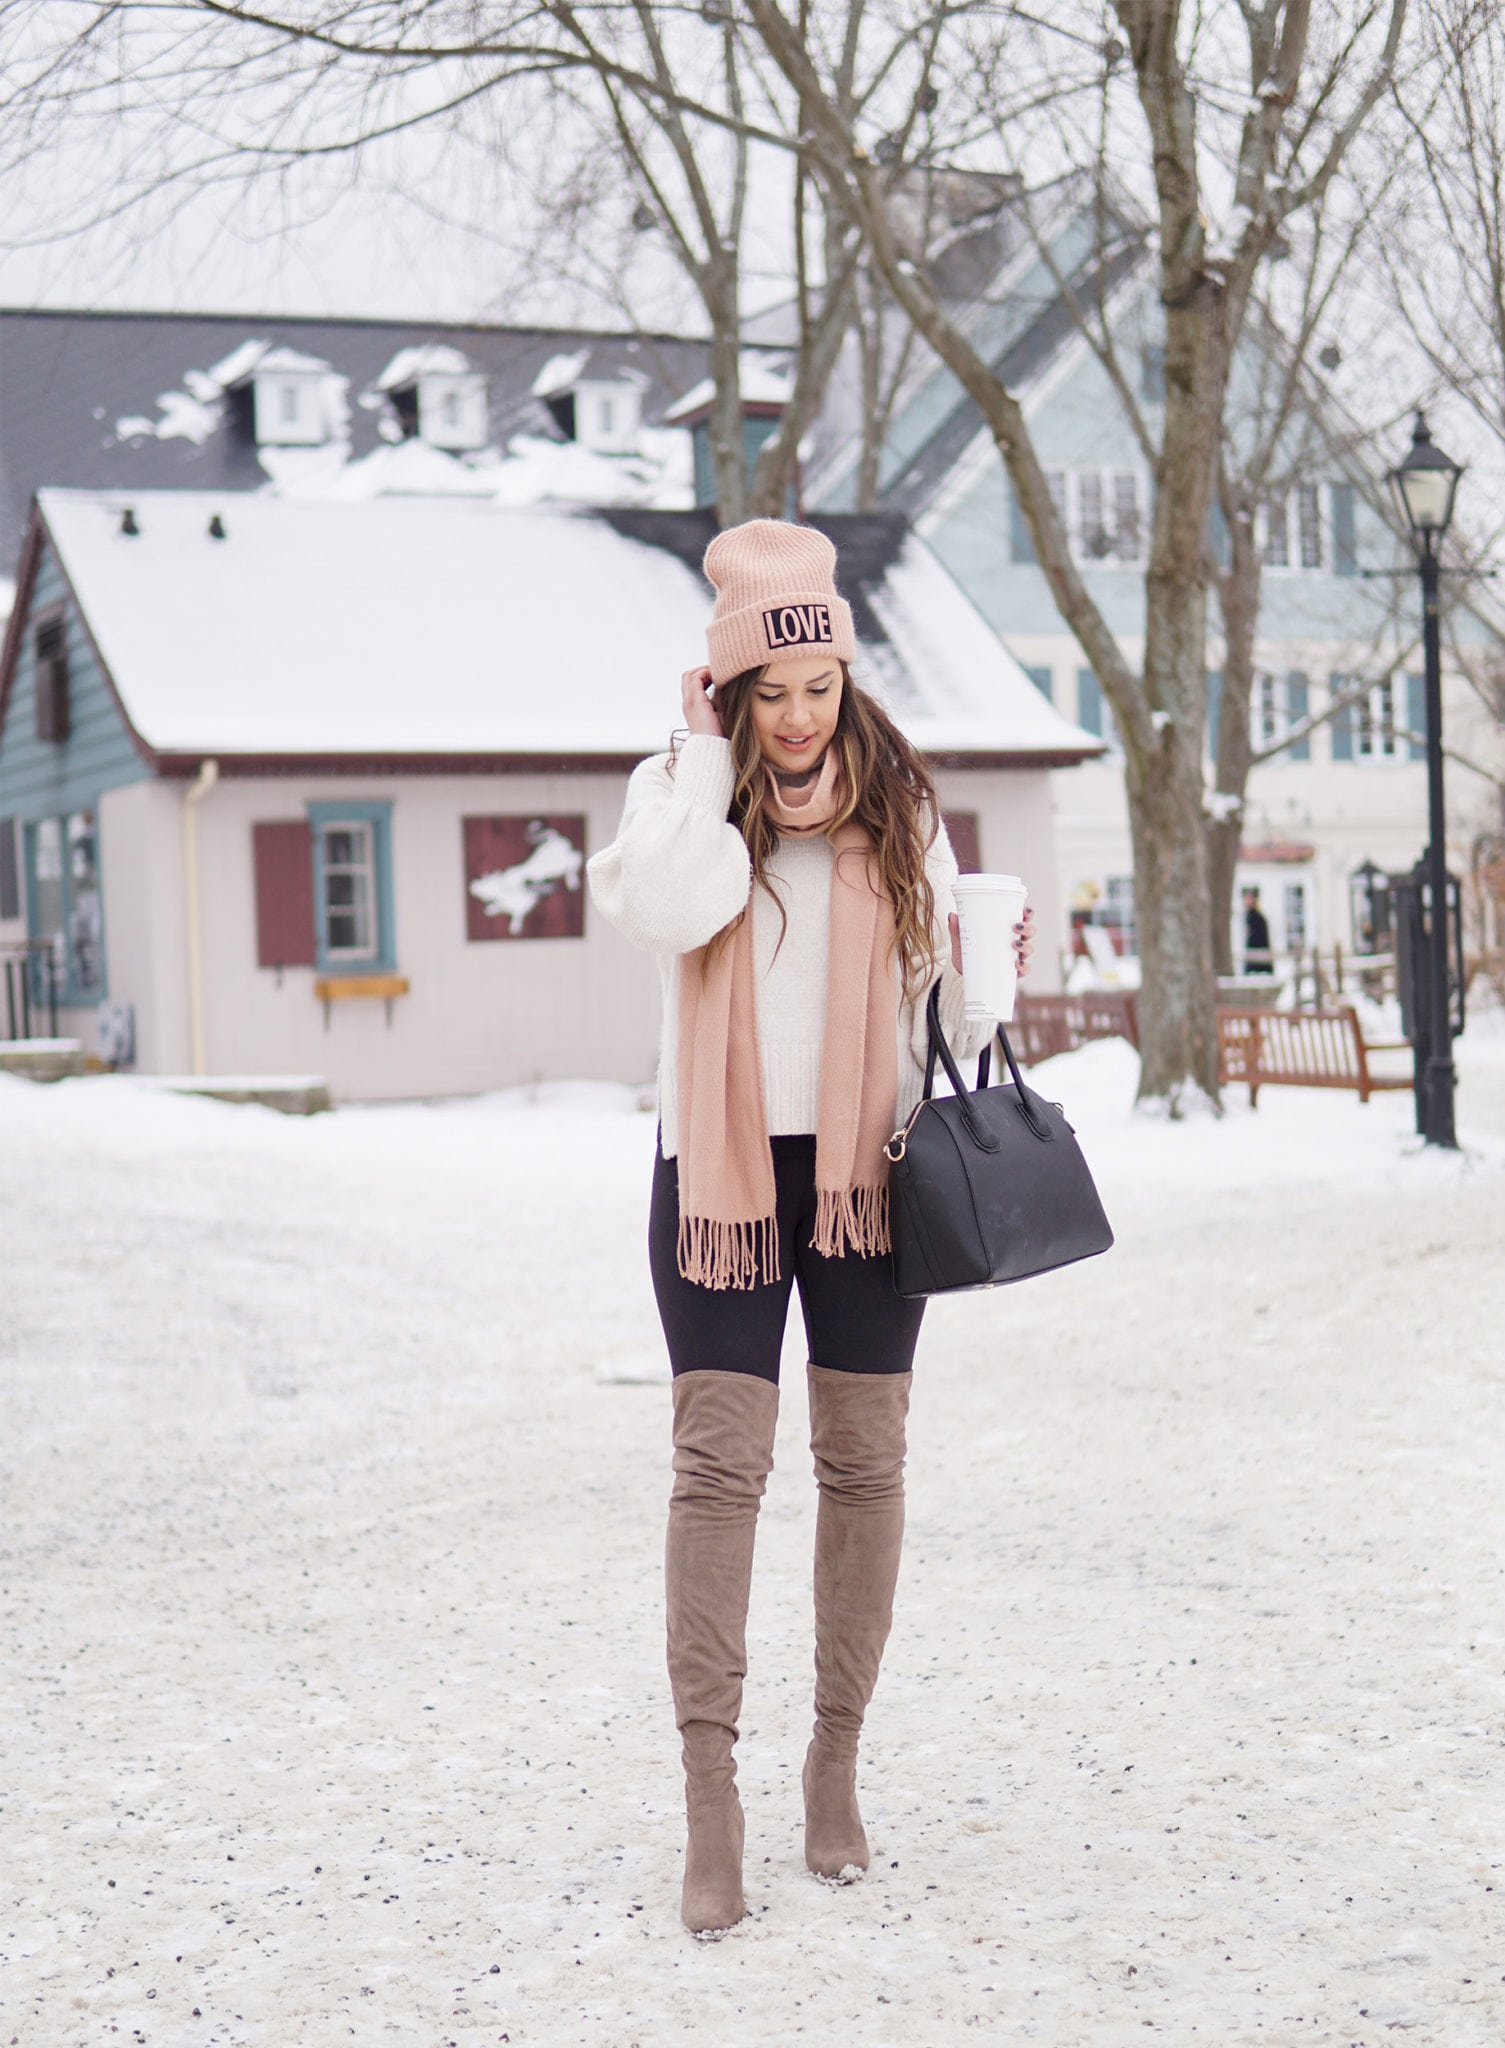 winter fashion outfit | staying warm | beauty blogger Mash elle | pink scarf | pink hat | otk boots, snow | Marie's Bazaar